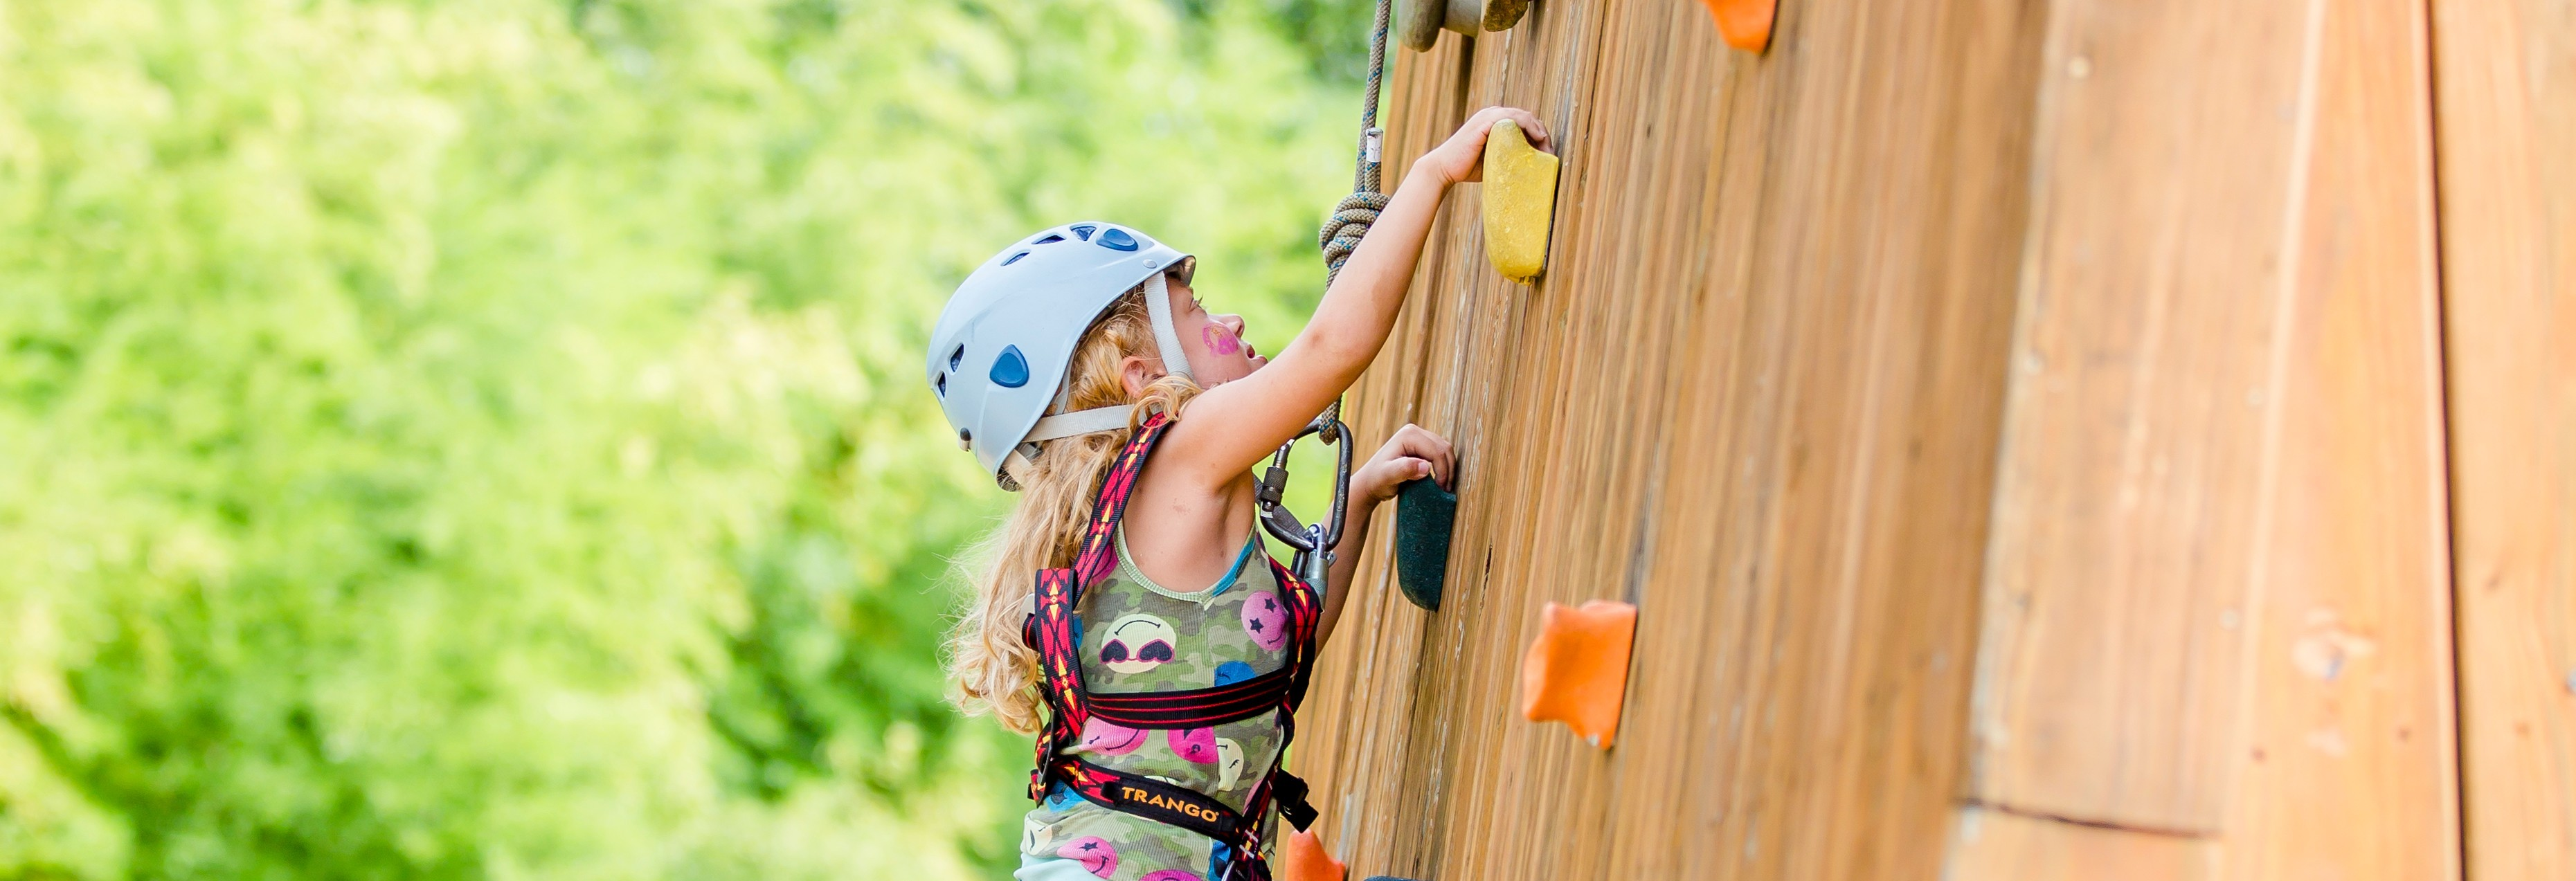 A young camper climbs the rock wall.